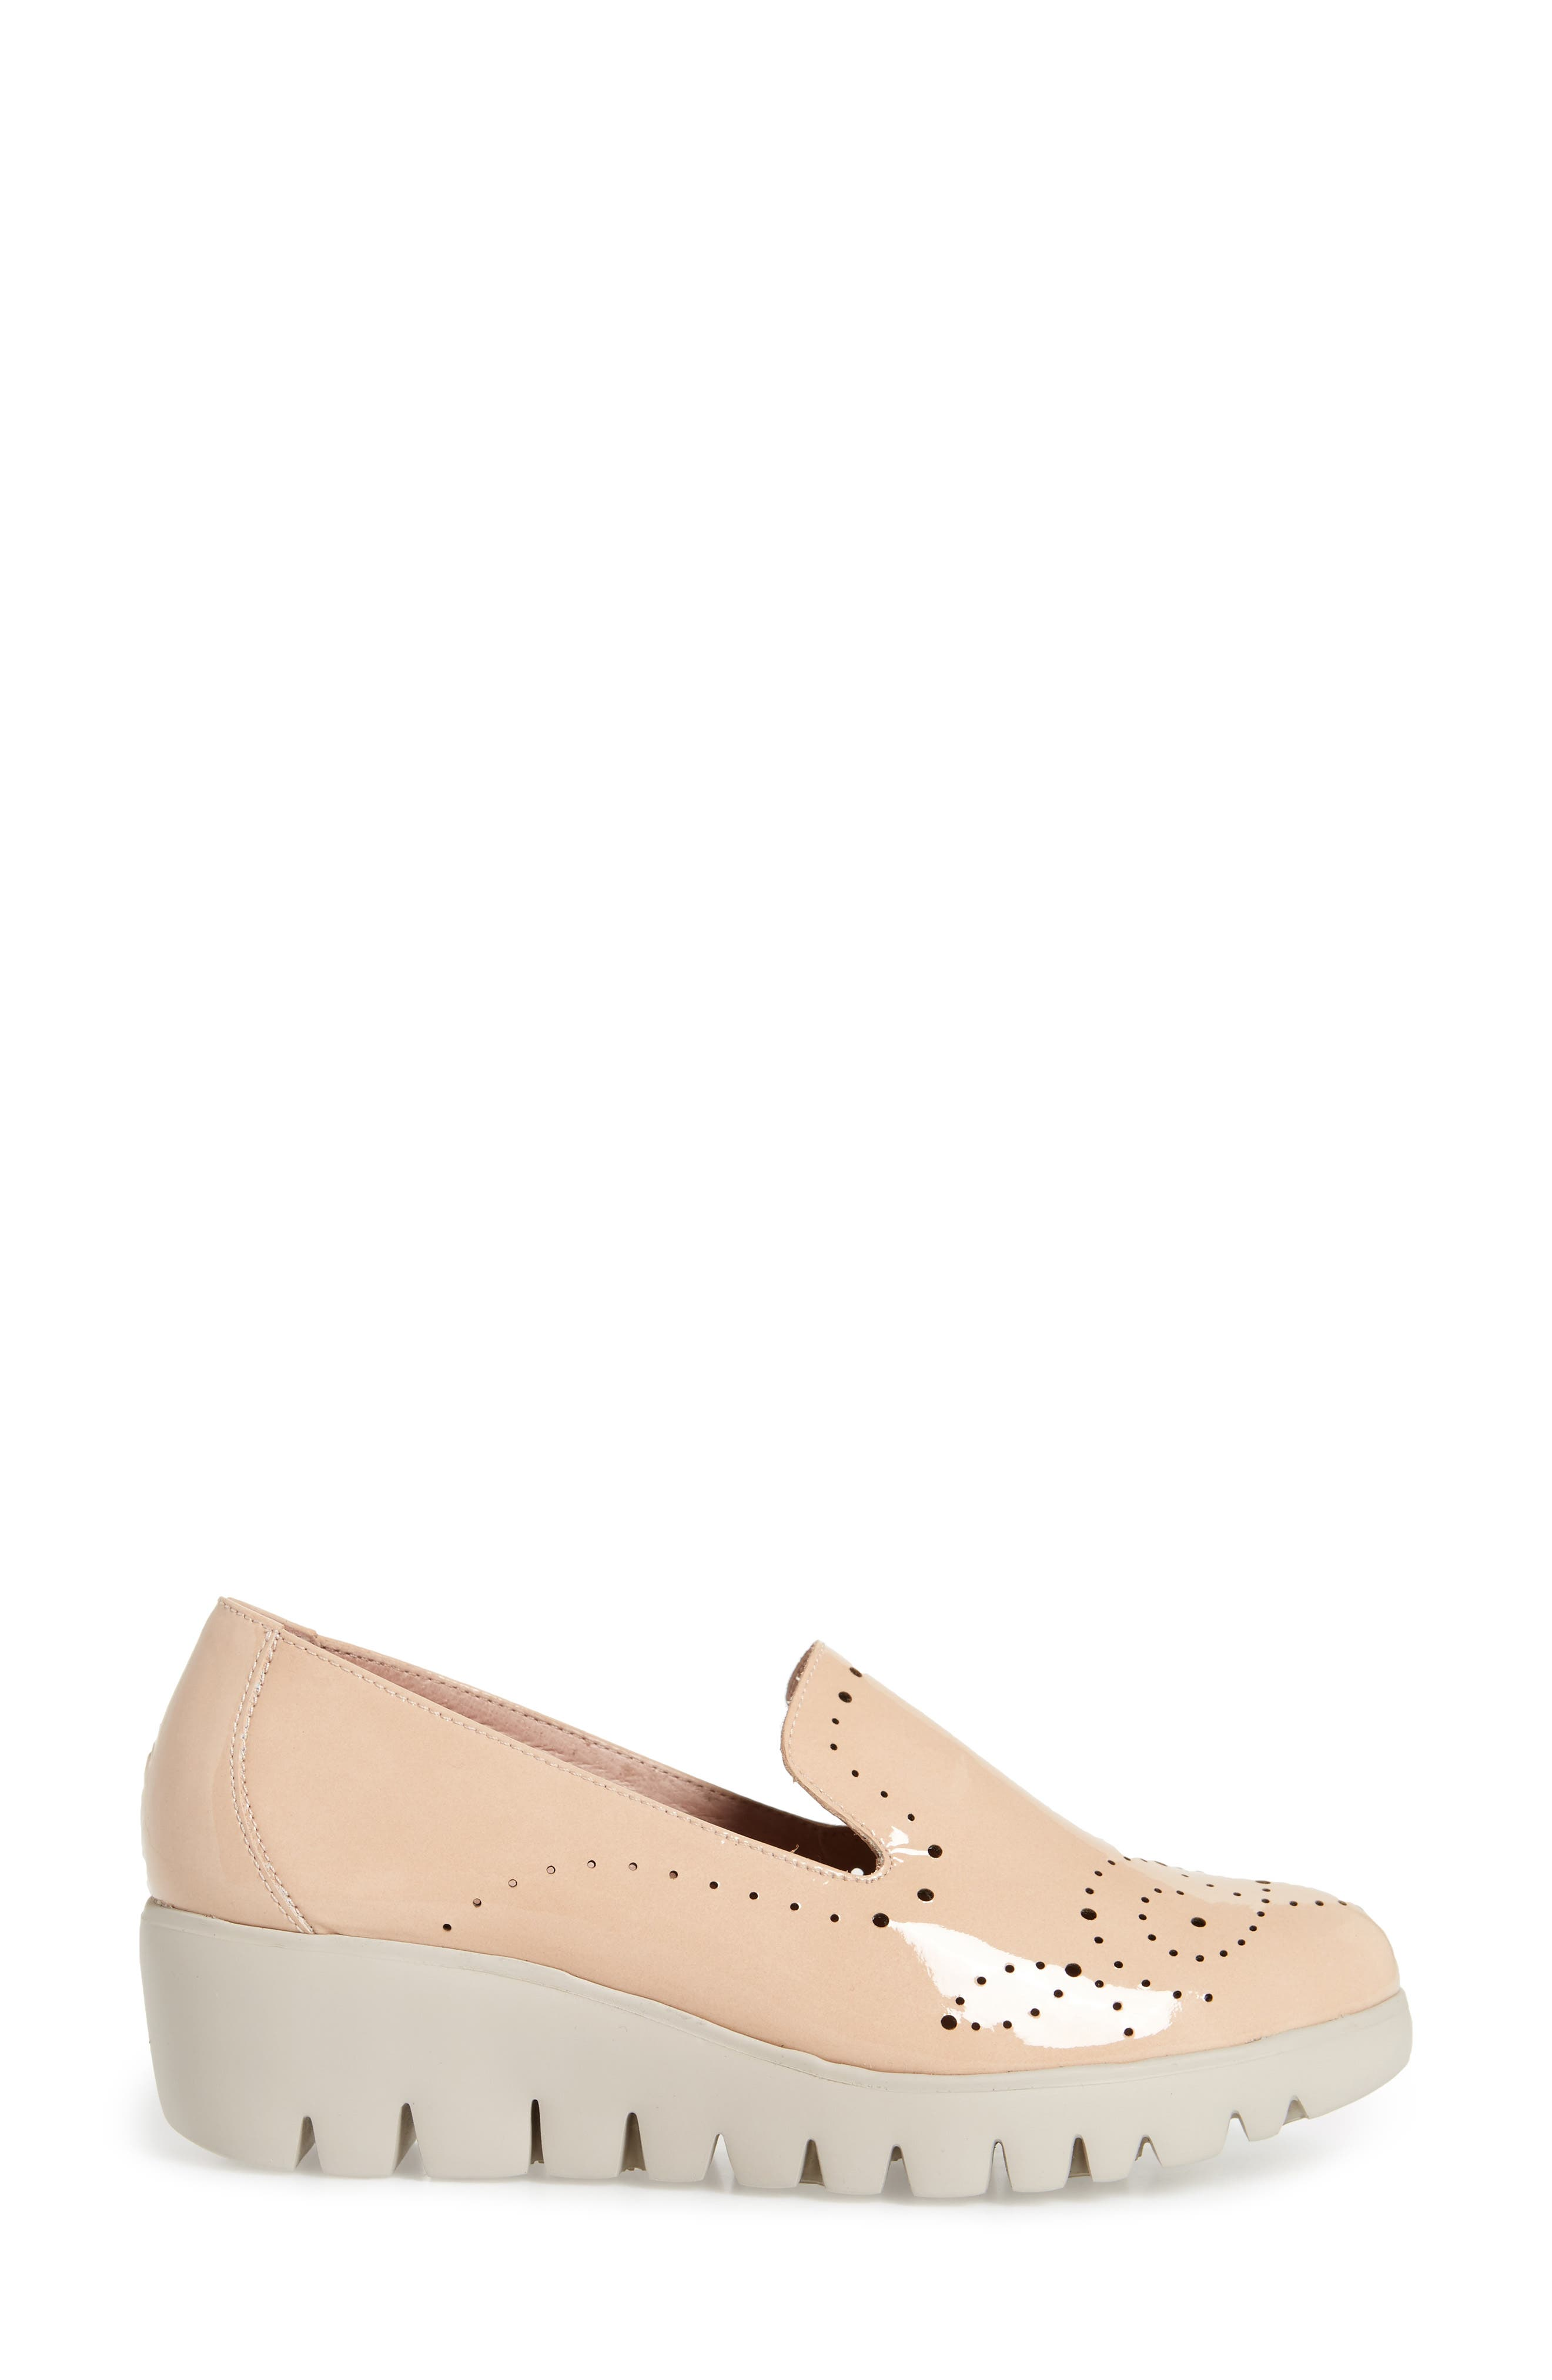 C-33114 Loafer Wedge,                             Alternate thumbnail 3, color,                             Palo Beige Leather